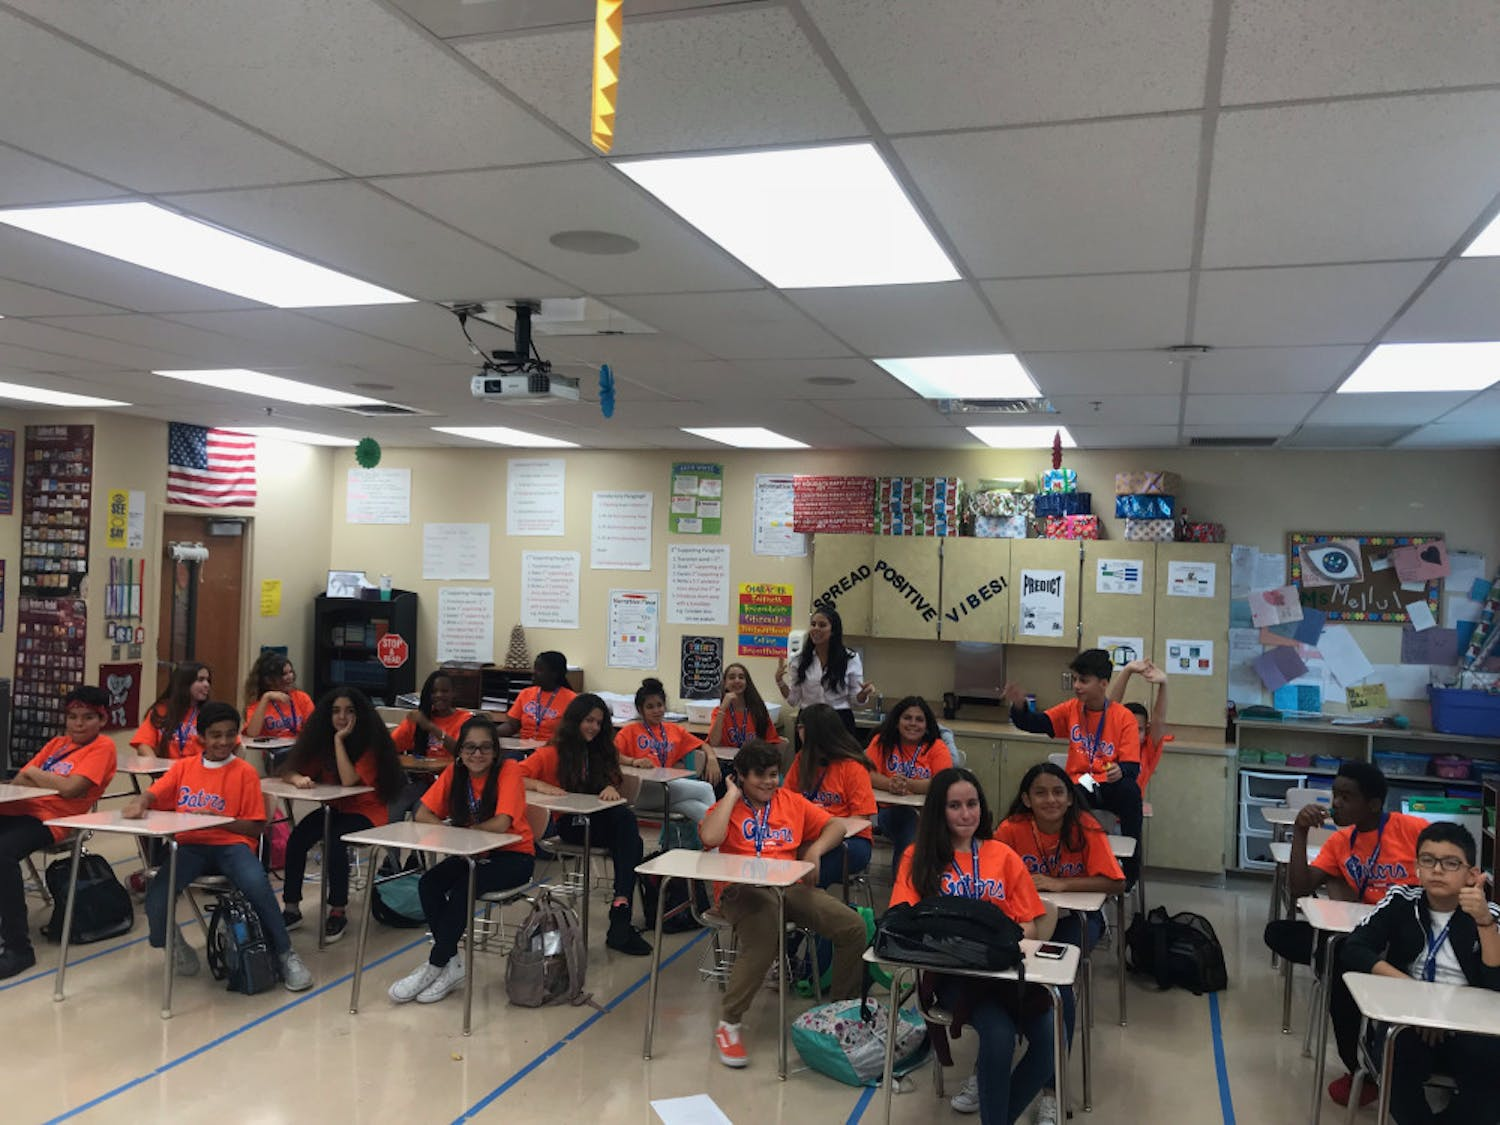 Students in their homeroom class at Palm Springs Community Middle School in West Palm Beach smile after receiving a box full of Gator shirts. UF was the only school of 20 to respond to the students request for shirts to celebrate College Friday.